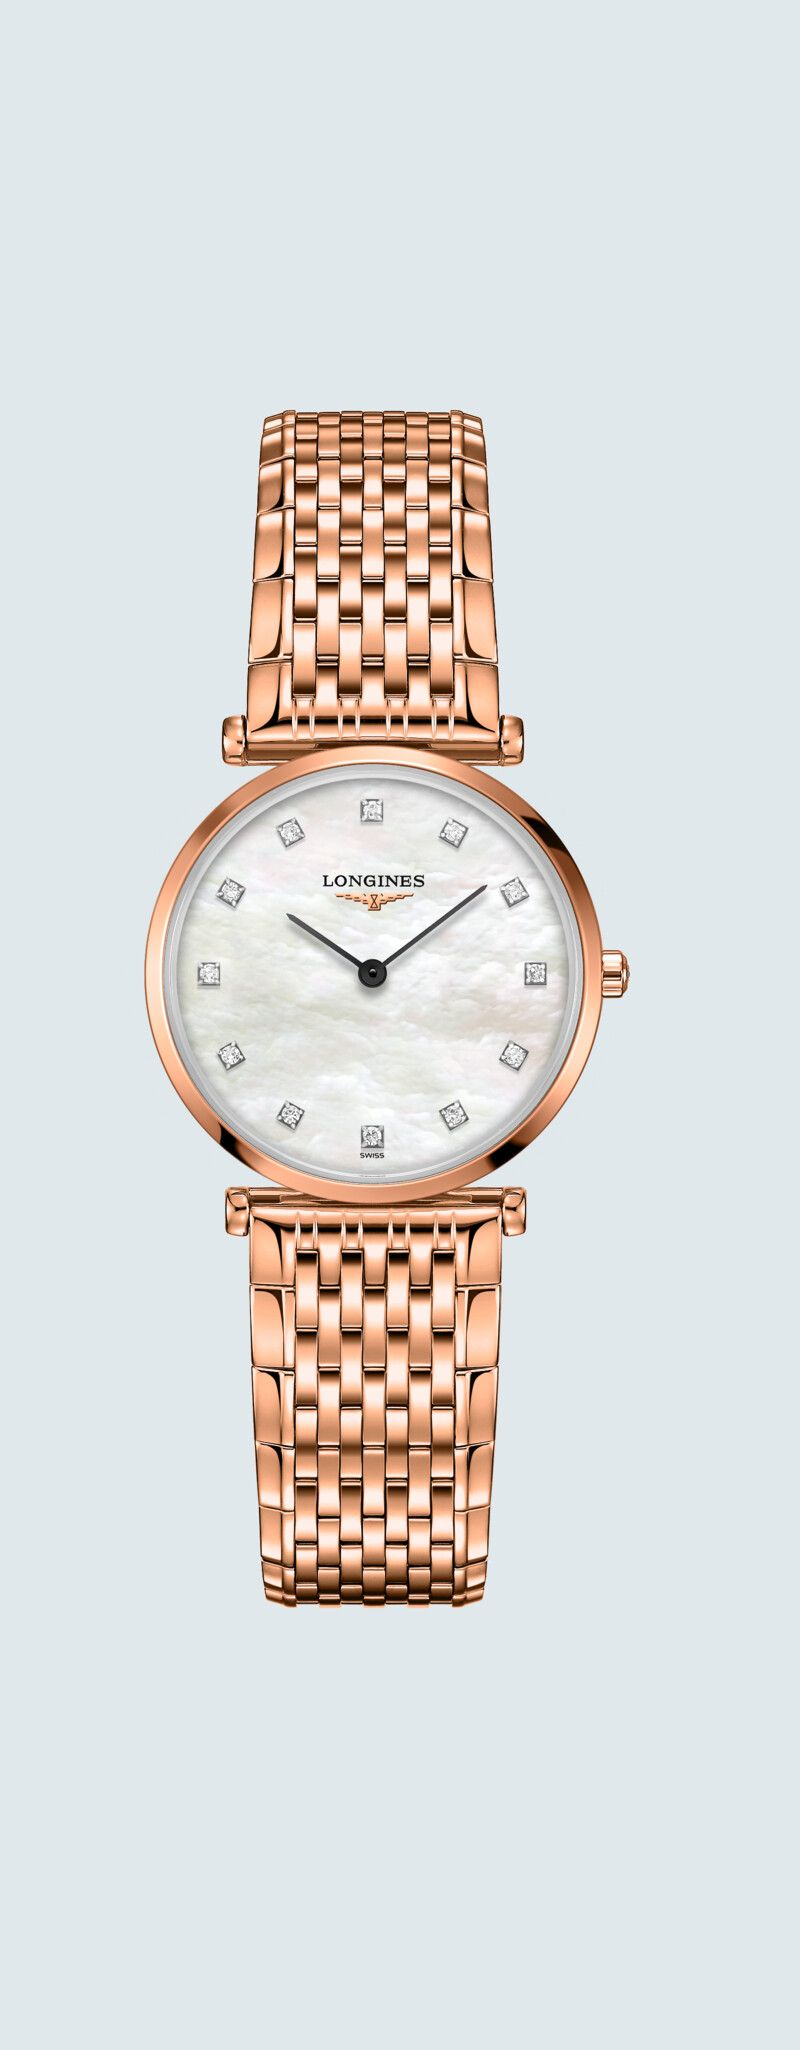 29.00 mm PVD rose case with Nacre blanche dial and Revêtement PVD rouge strap - case zoom view